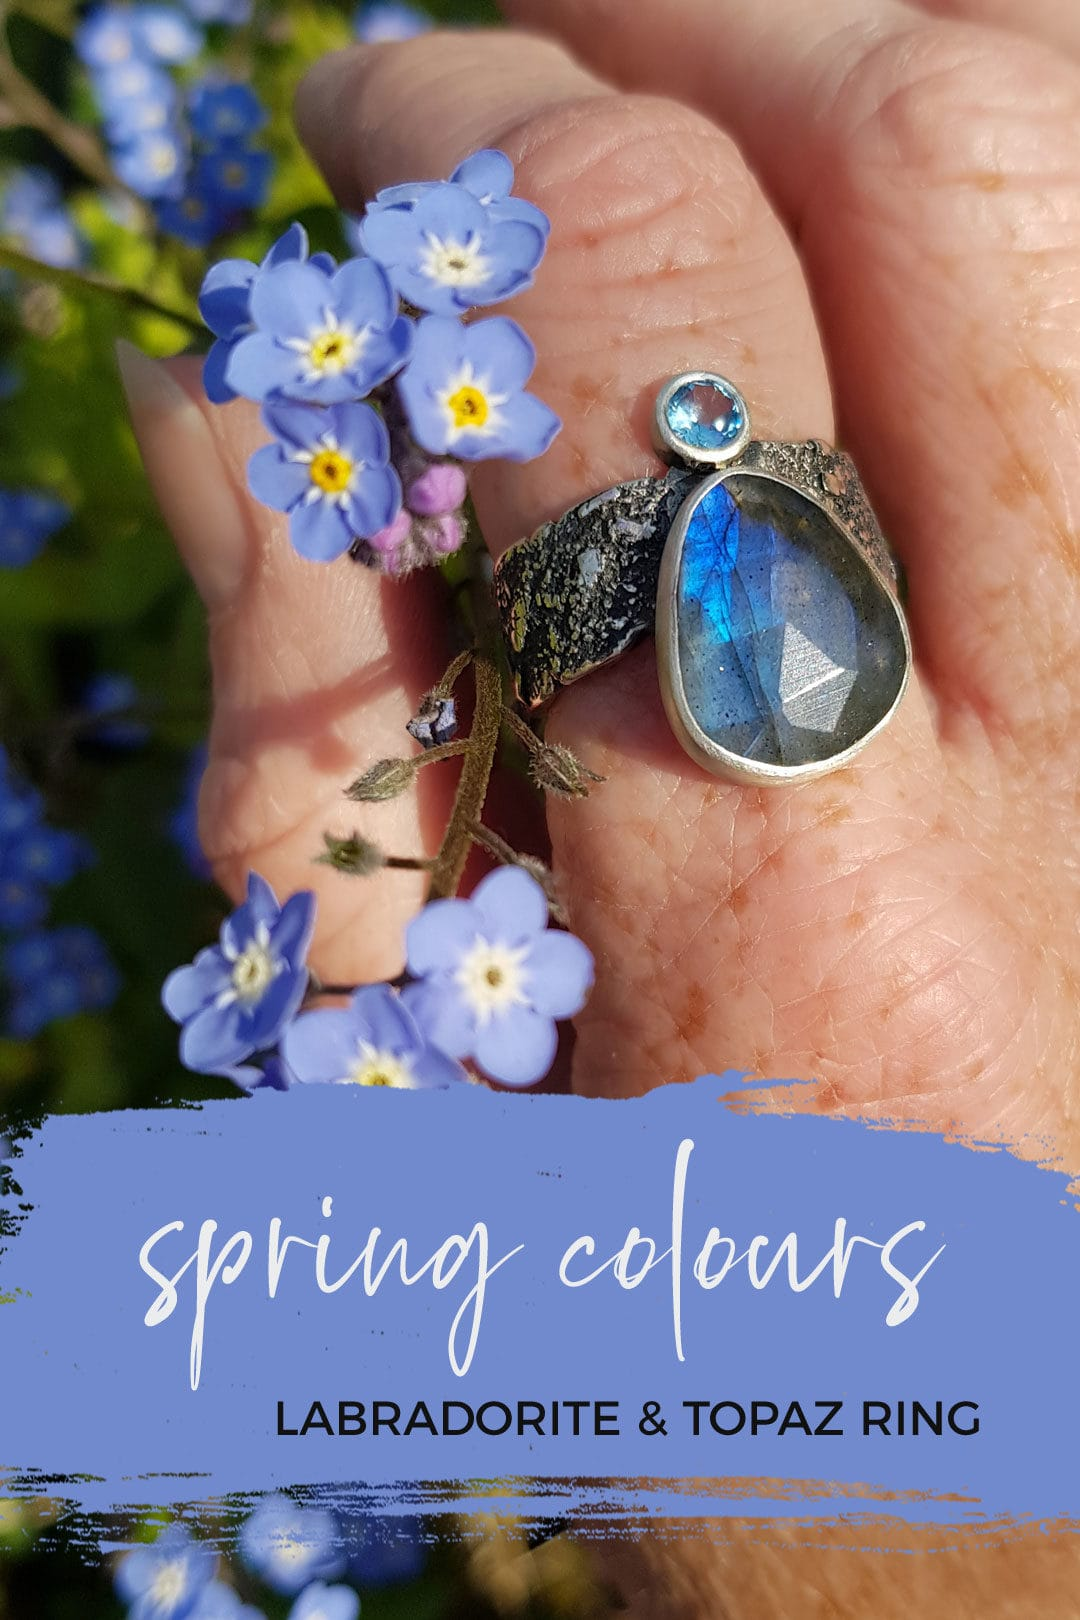 Labraodrite and topaz ring, colours of spring